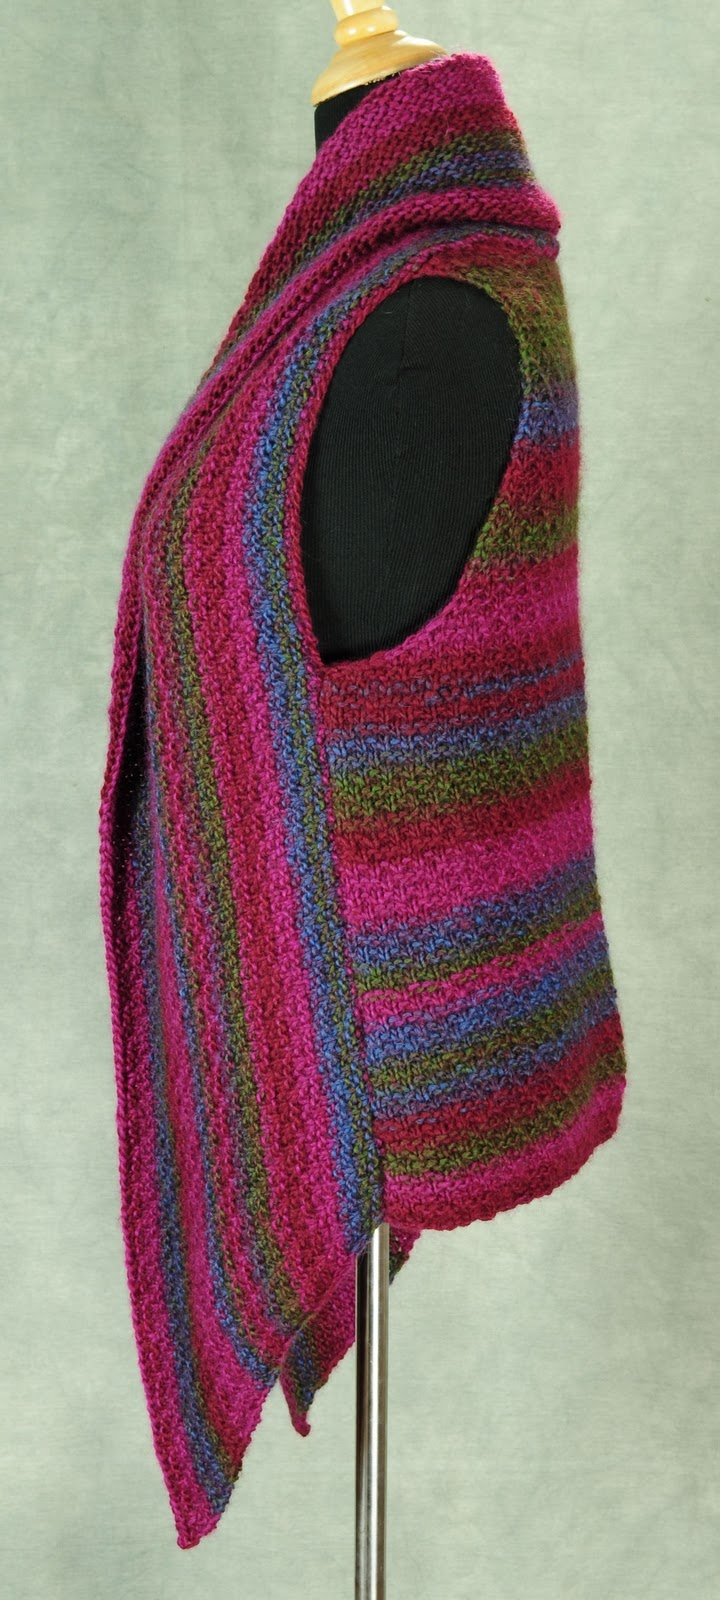 The Prudence Crowley Vest knitted, really interesting design & construction